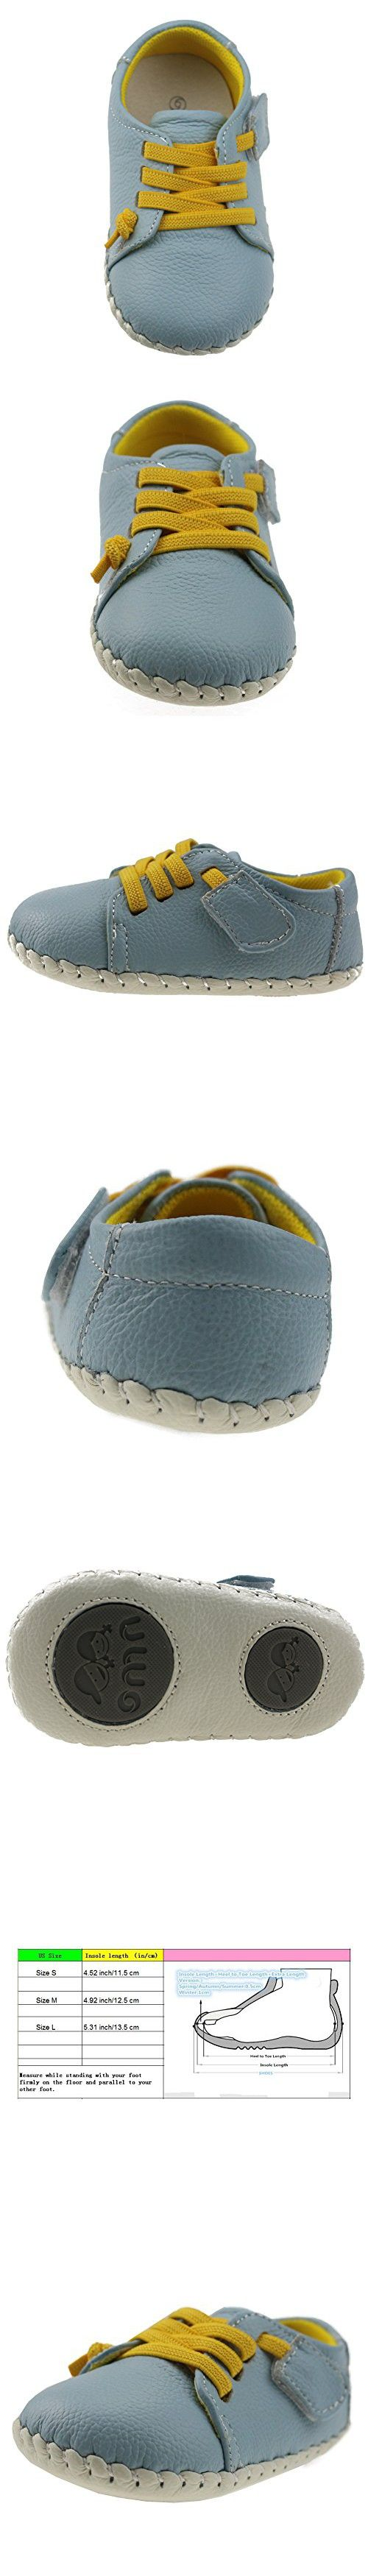 Orgrimmar Baby Boys Girls First Walkers Soft Sole Leather Baby Shoes (Size S, Light Blue)